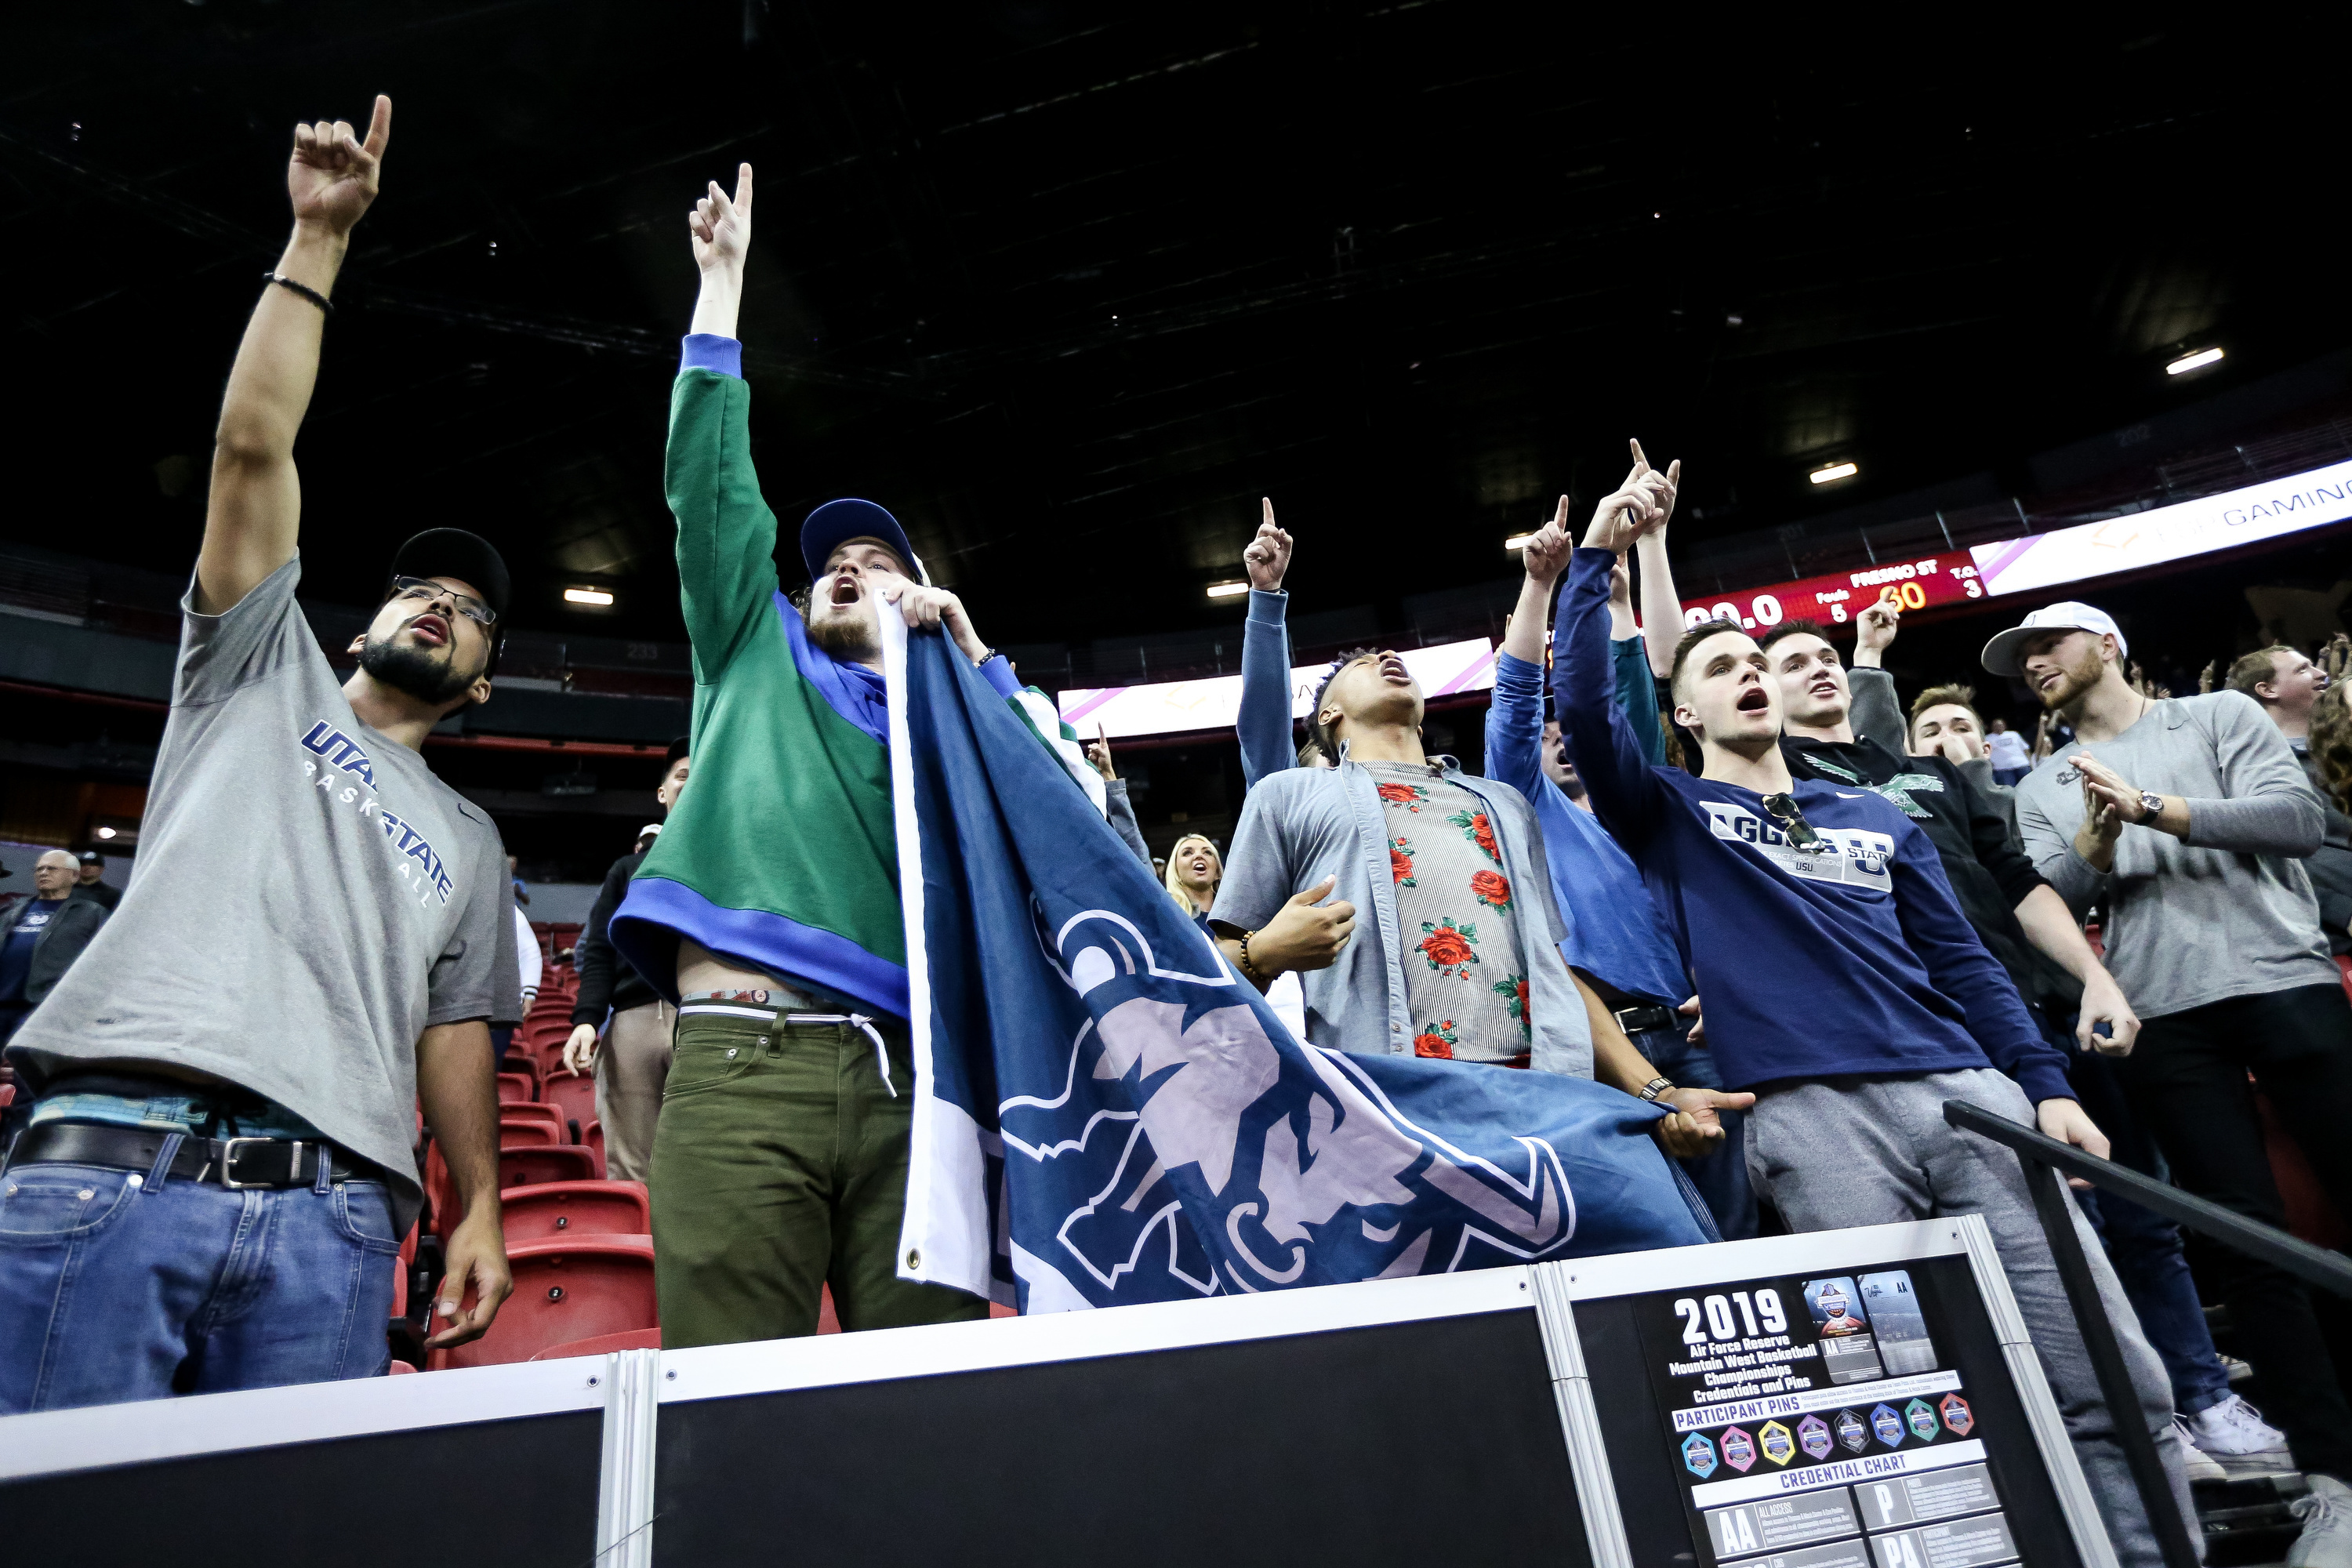 Utah State Aggies fans cheer after their win over the Fresno State Bulldogs in a Mountain West Conference semifinal game at the Thomas & Mack Center in Las Vegas on Friday, March 15, 2019.